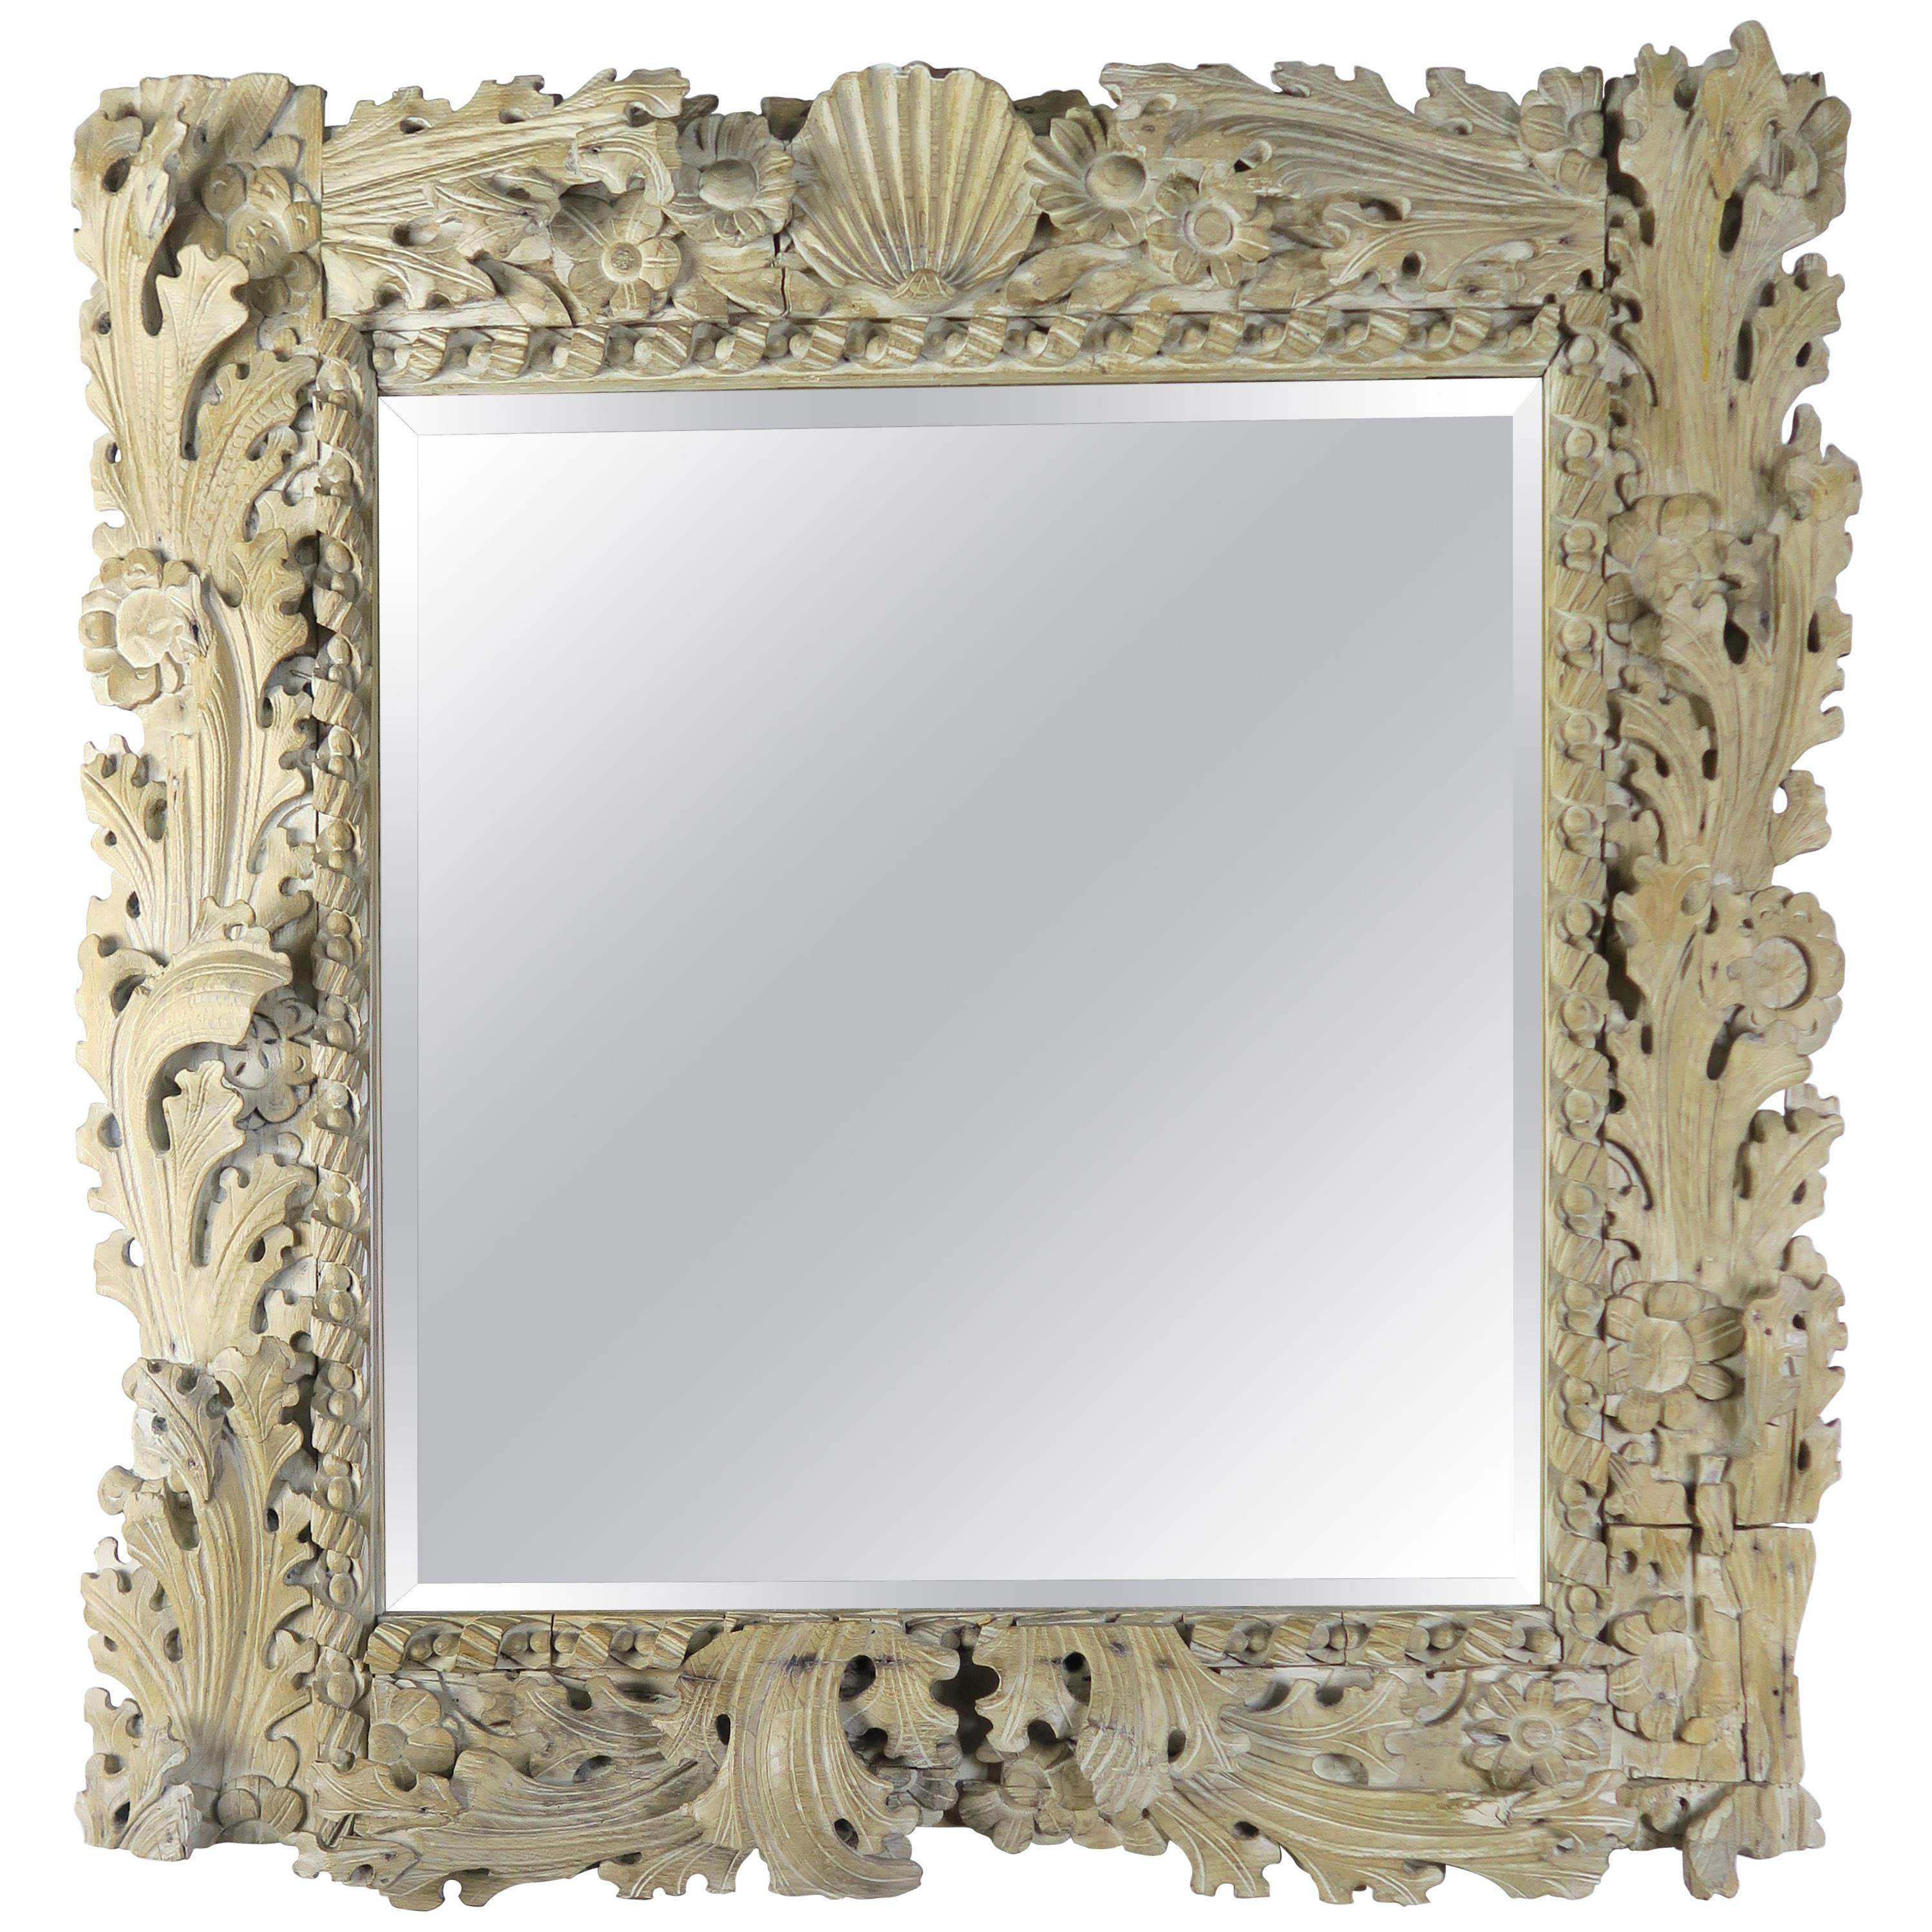 Italian Carved Bleached Walnut Acanthus Leaf and Shell Mirror